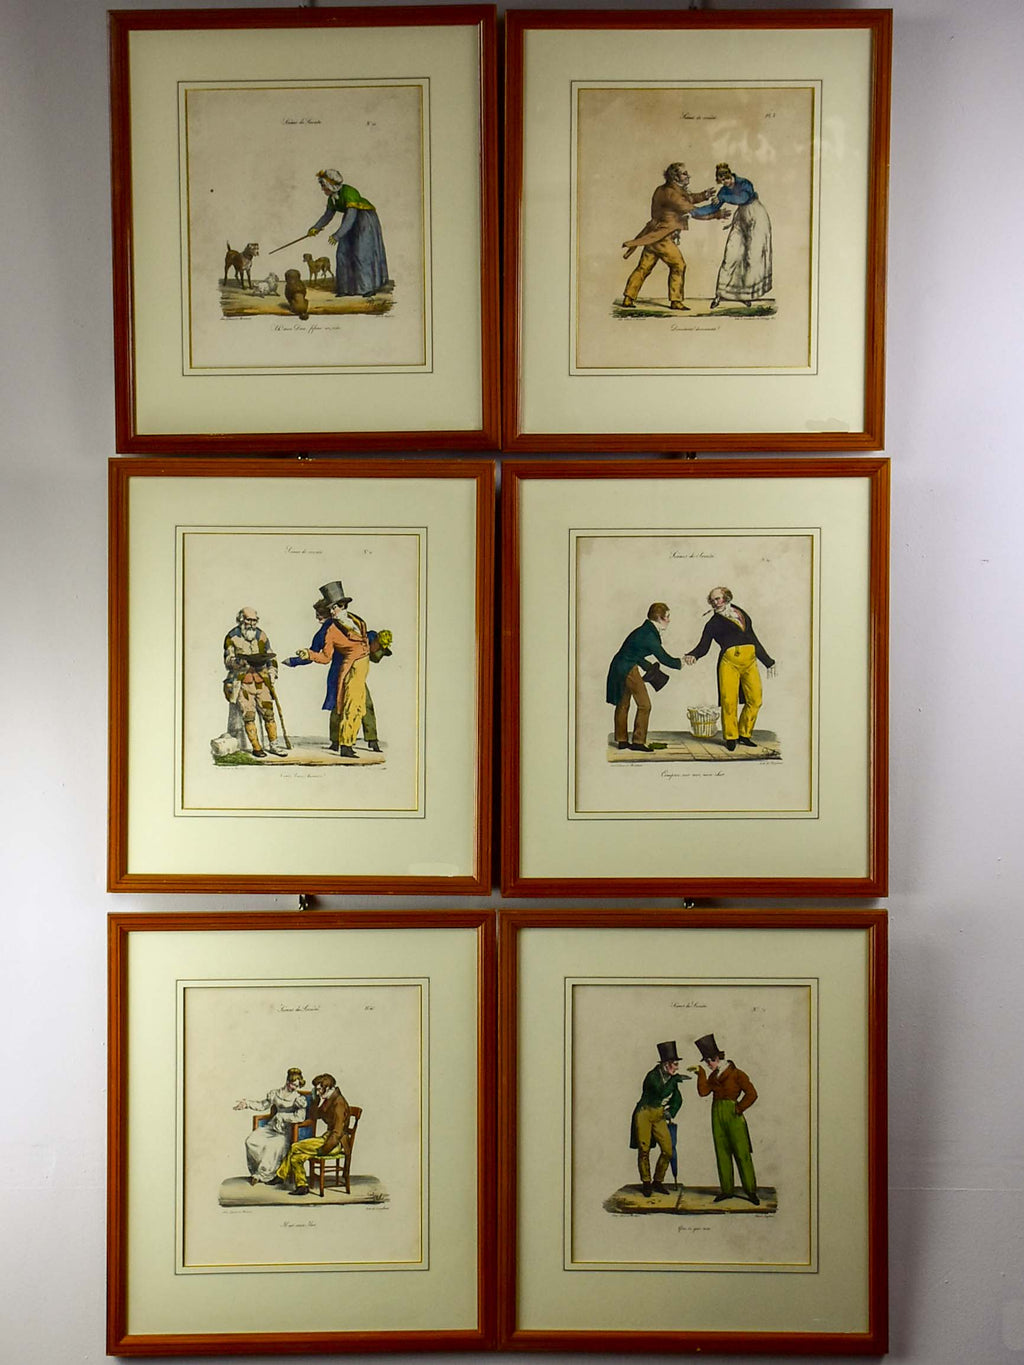 Lot of 7 satirical French lithographs - Pigal 'Scenes of Society' 16 ¼'' x 18 ¼''